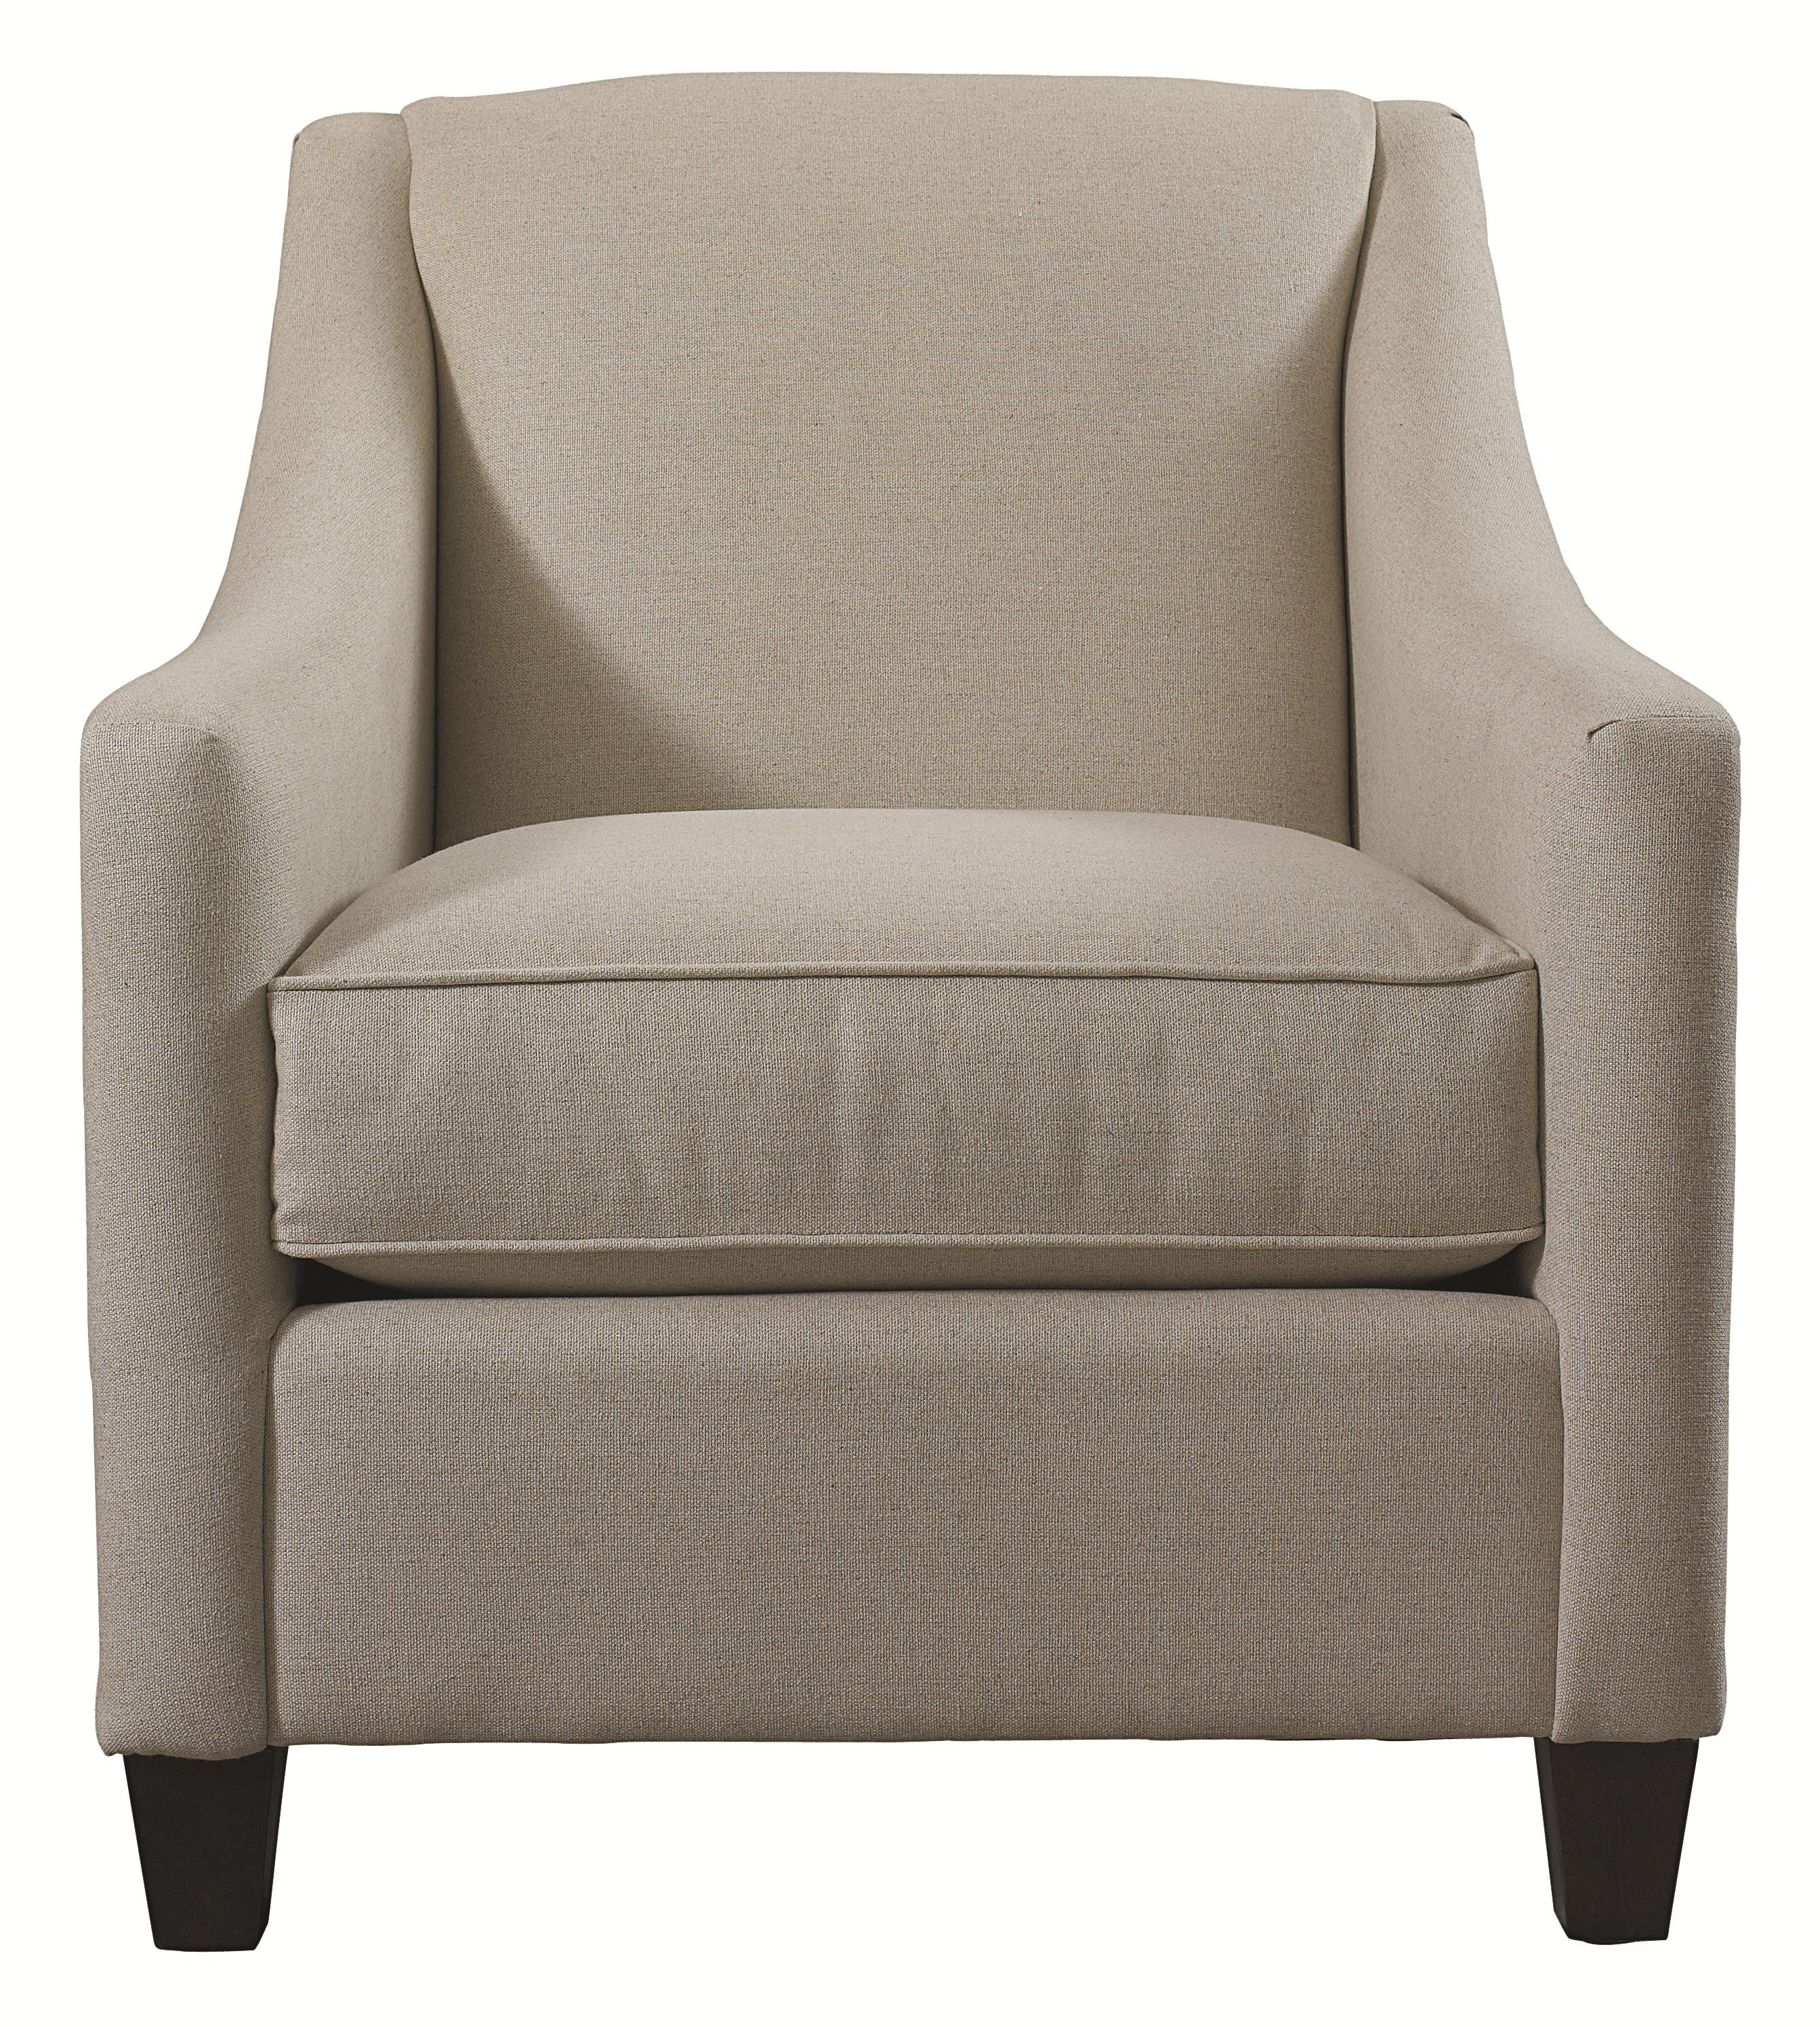 Bassett Accent Chairs by Bassett Corina Accent Chair - Item Number: 1044-02